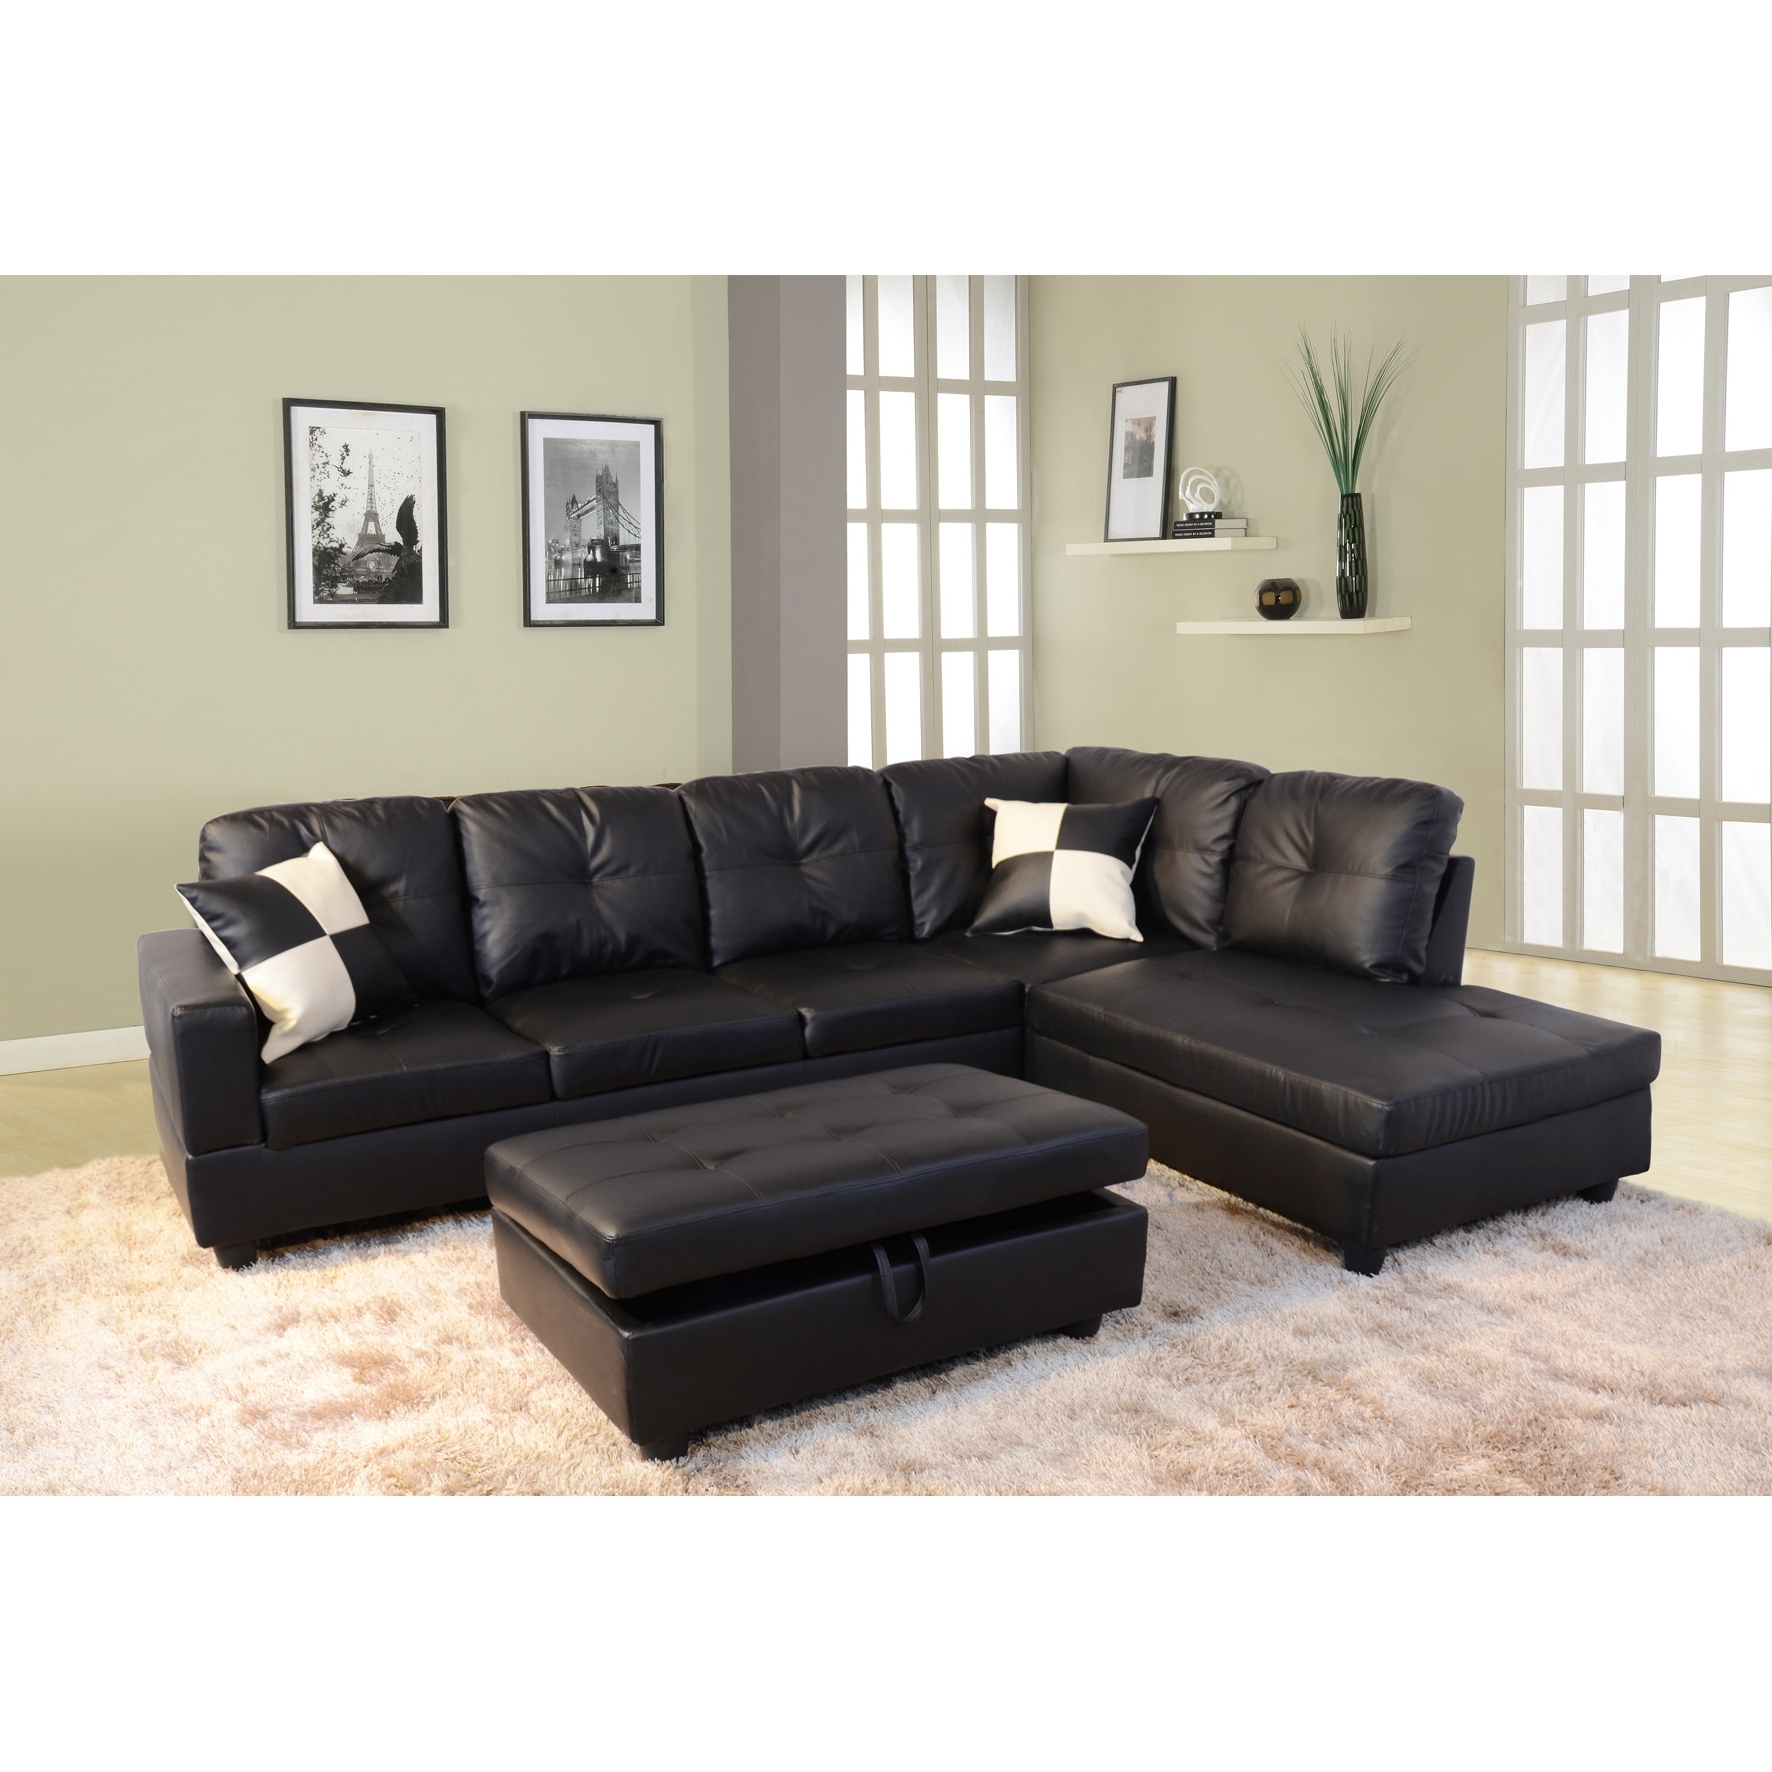 Latest Russ Sofa Bed With Chaise – Mariaalcocer Within Russ Sofa Beds With Chaise (View 4 of 15)